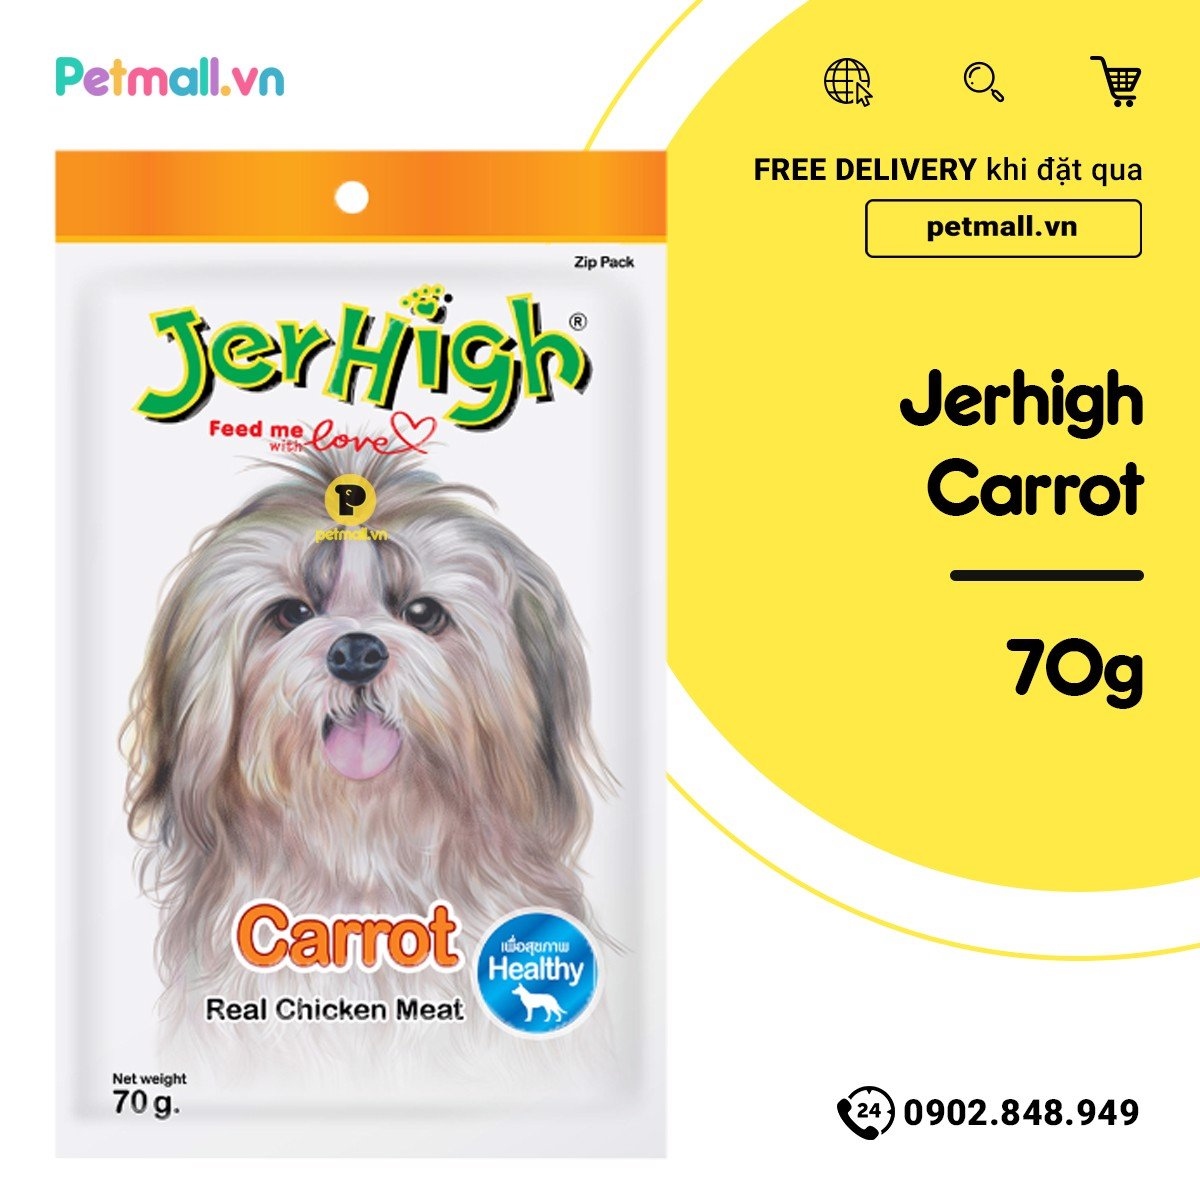 Snack Jerhigh Carrot 70g